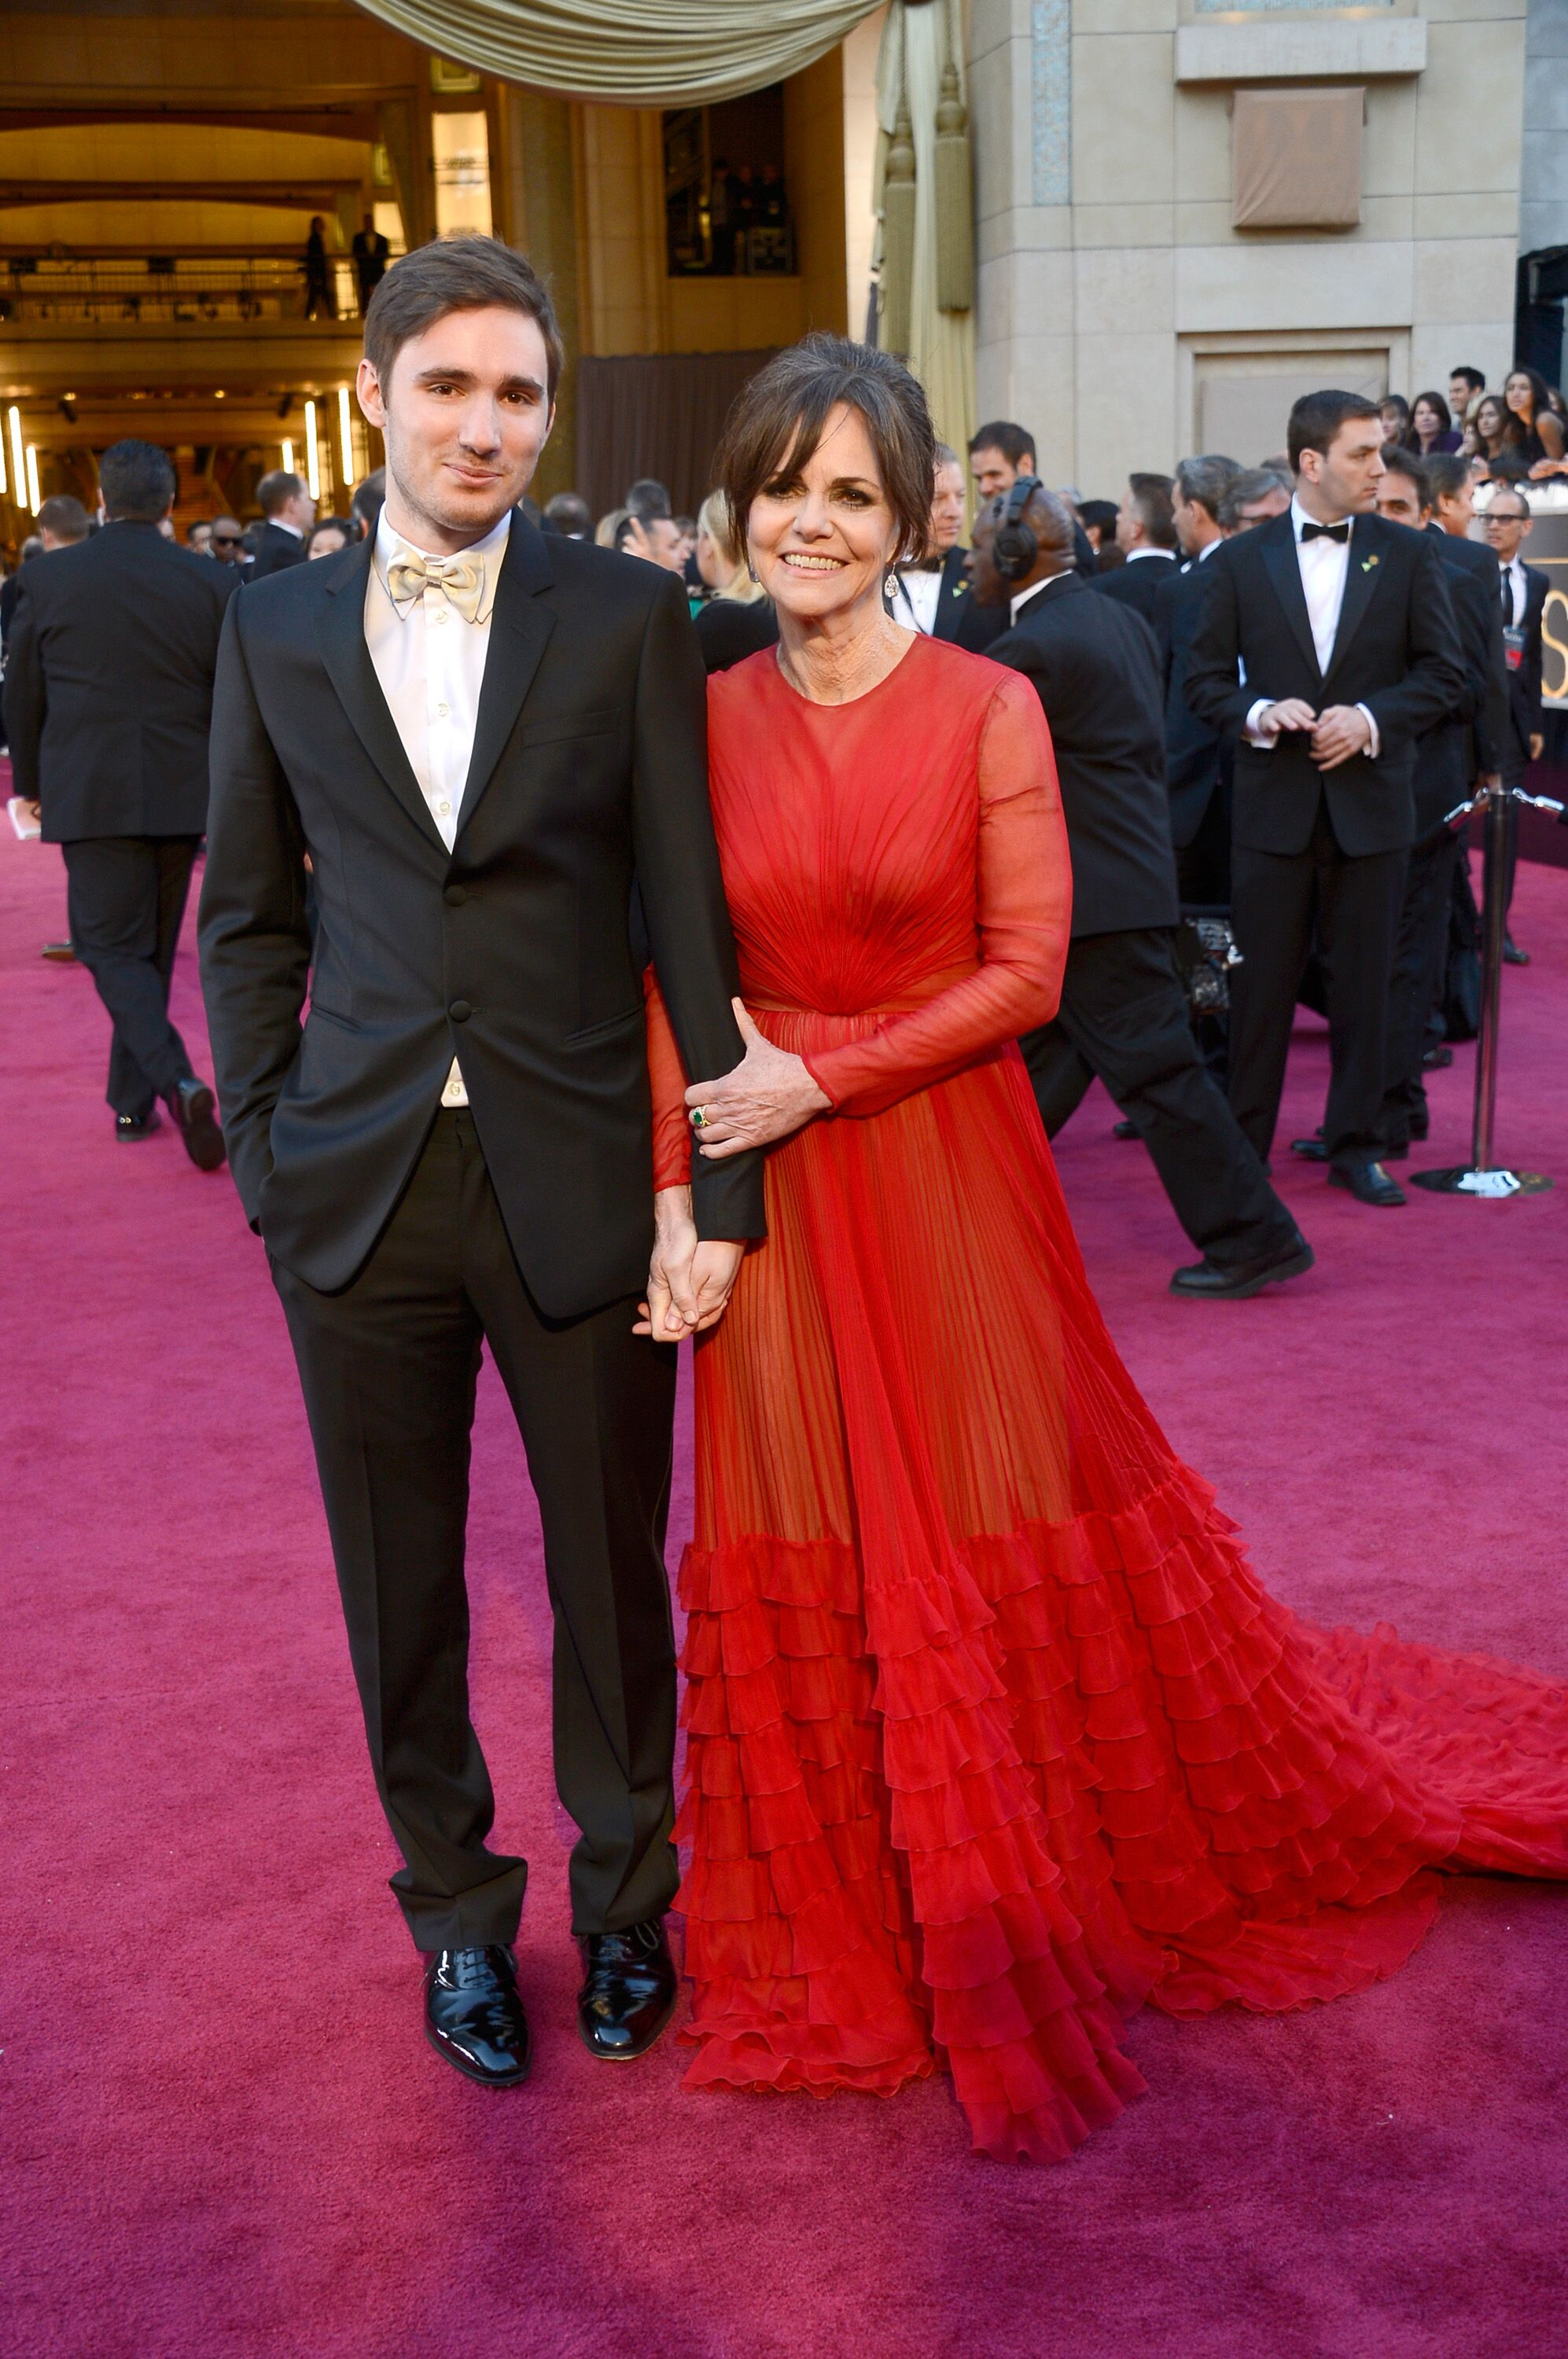 Sally Field and son Sam Greisman arrives at the Oscars at Hollywood & Highland Center. | Source: Getty Images